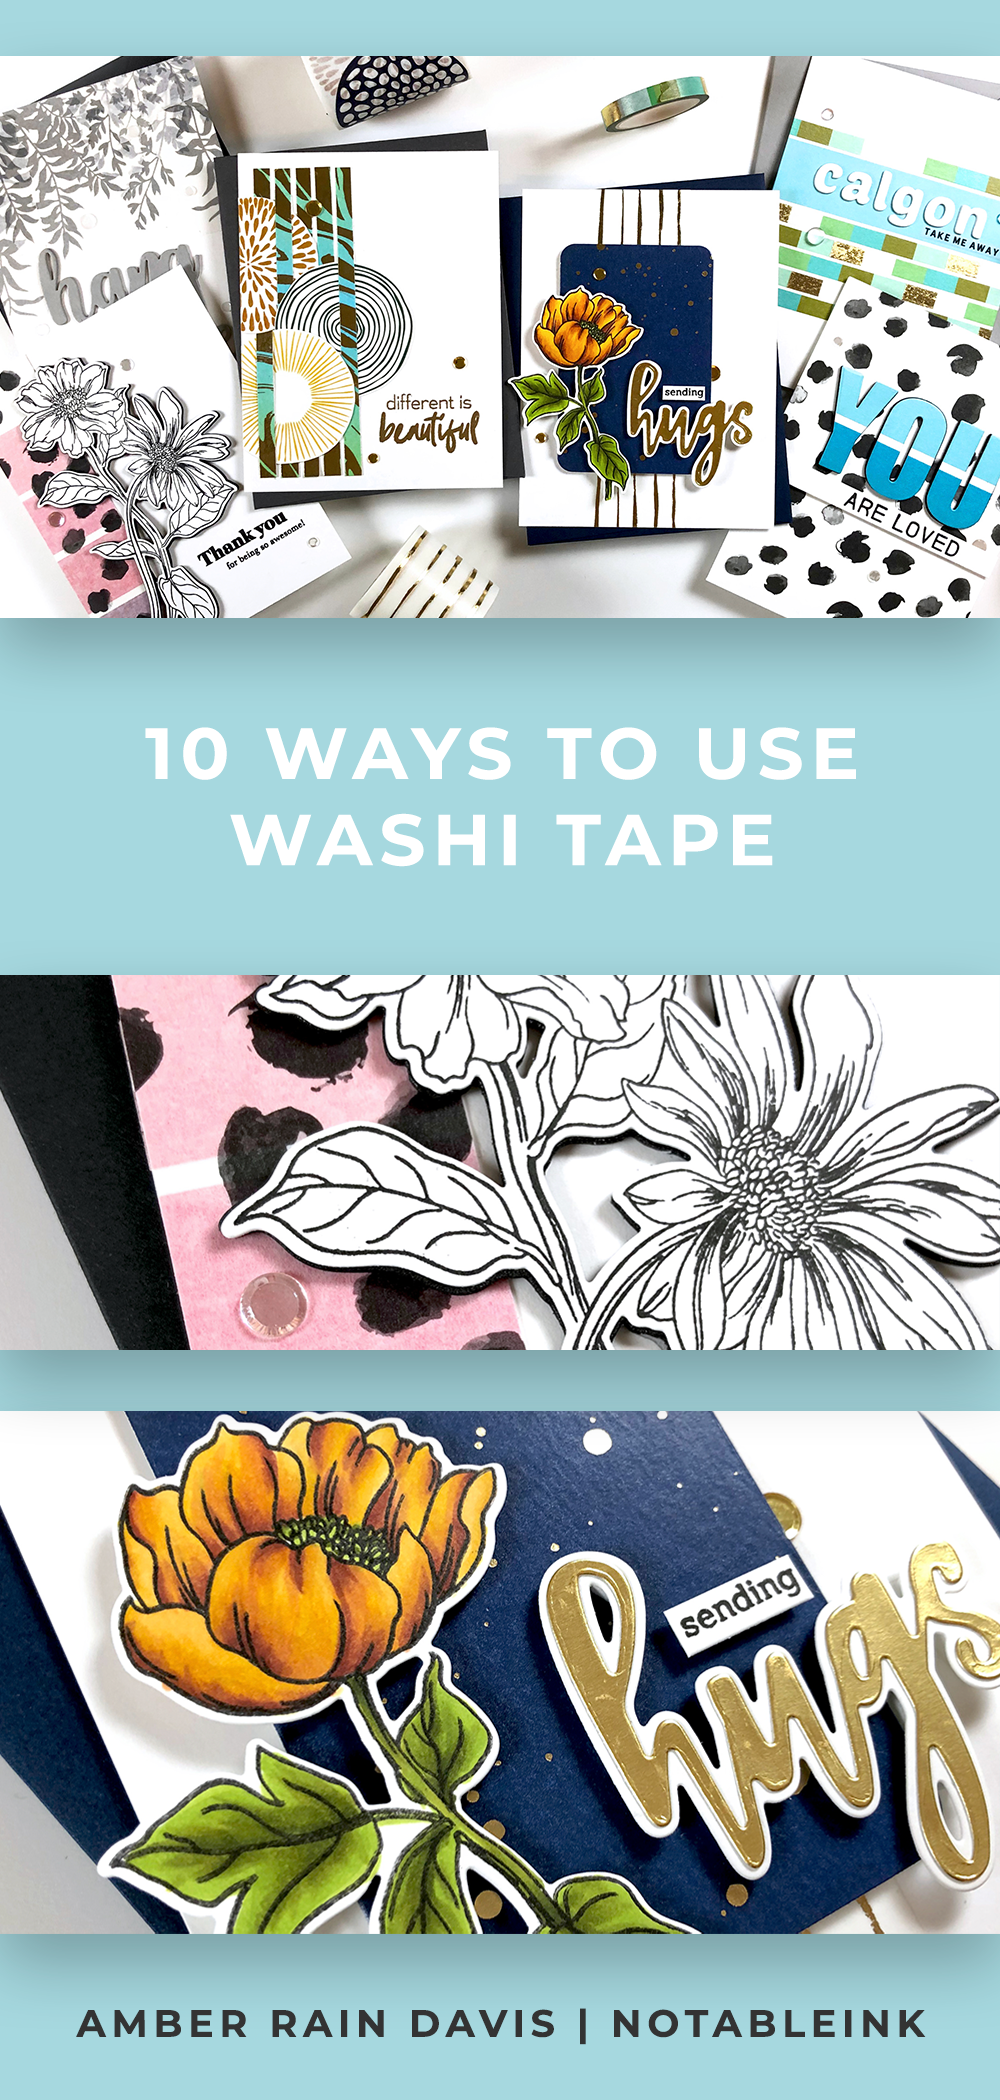 10 Ways To Use Washi Tape In Cardmaking Simple Cards Handmade Cards Handmade Card Design Handmade